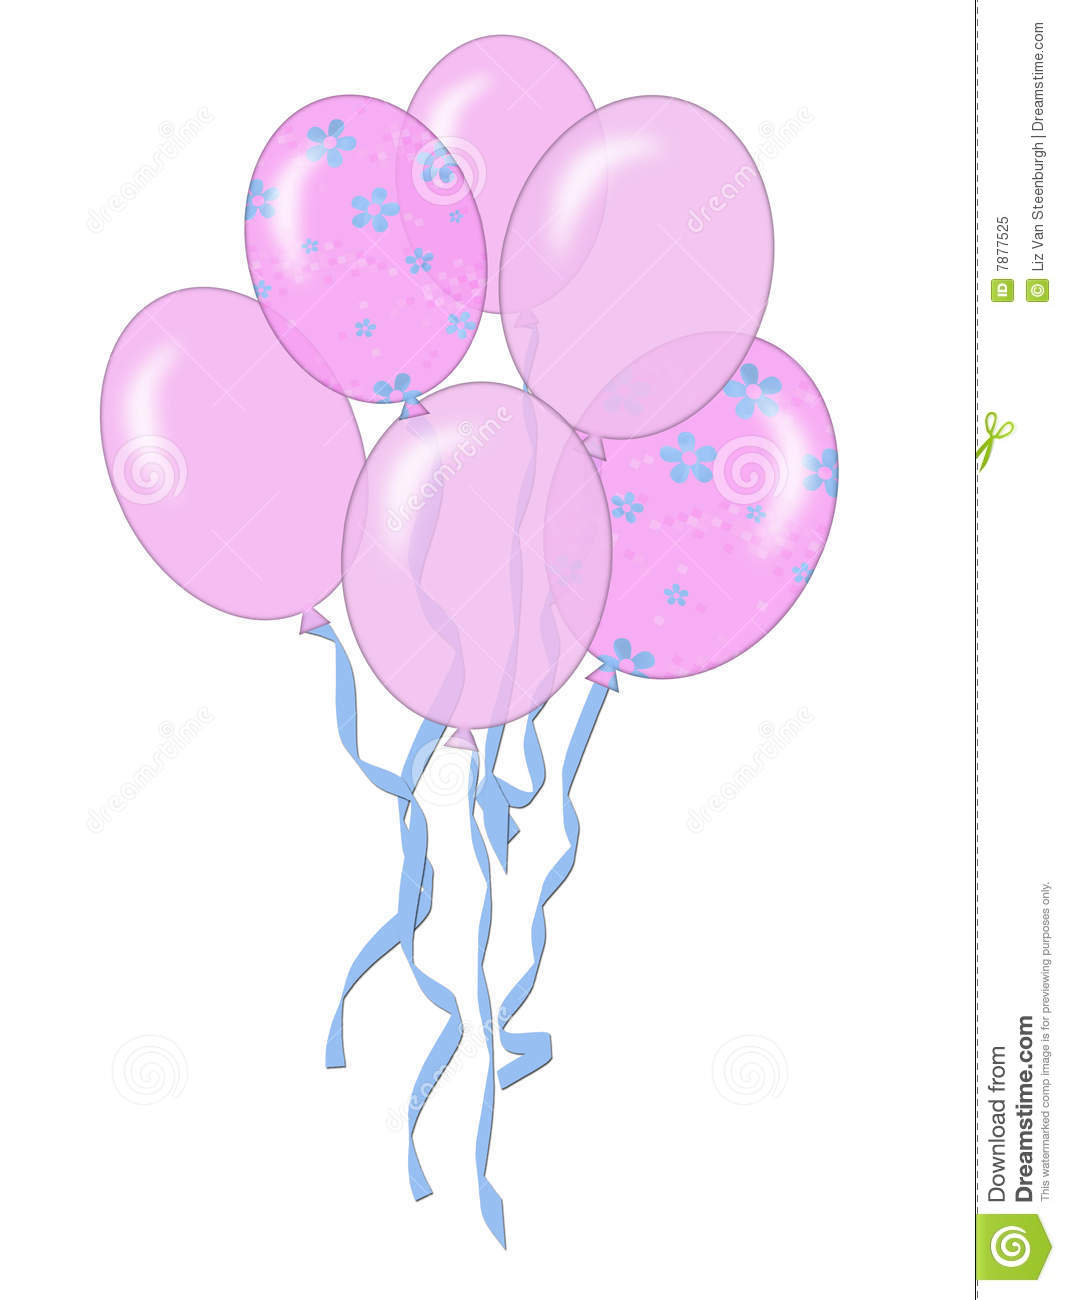 Pink Balloons Royalty Free Stock Photo - Image: 7877525